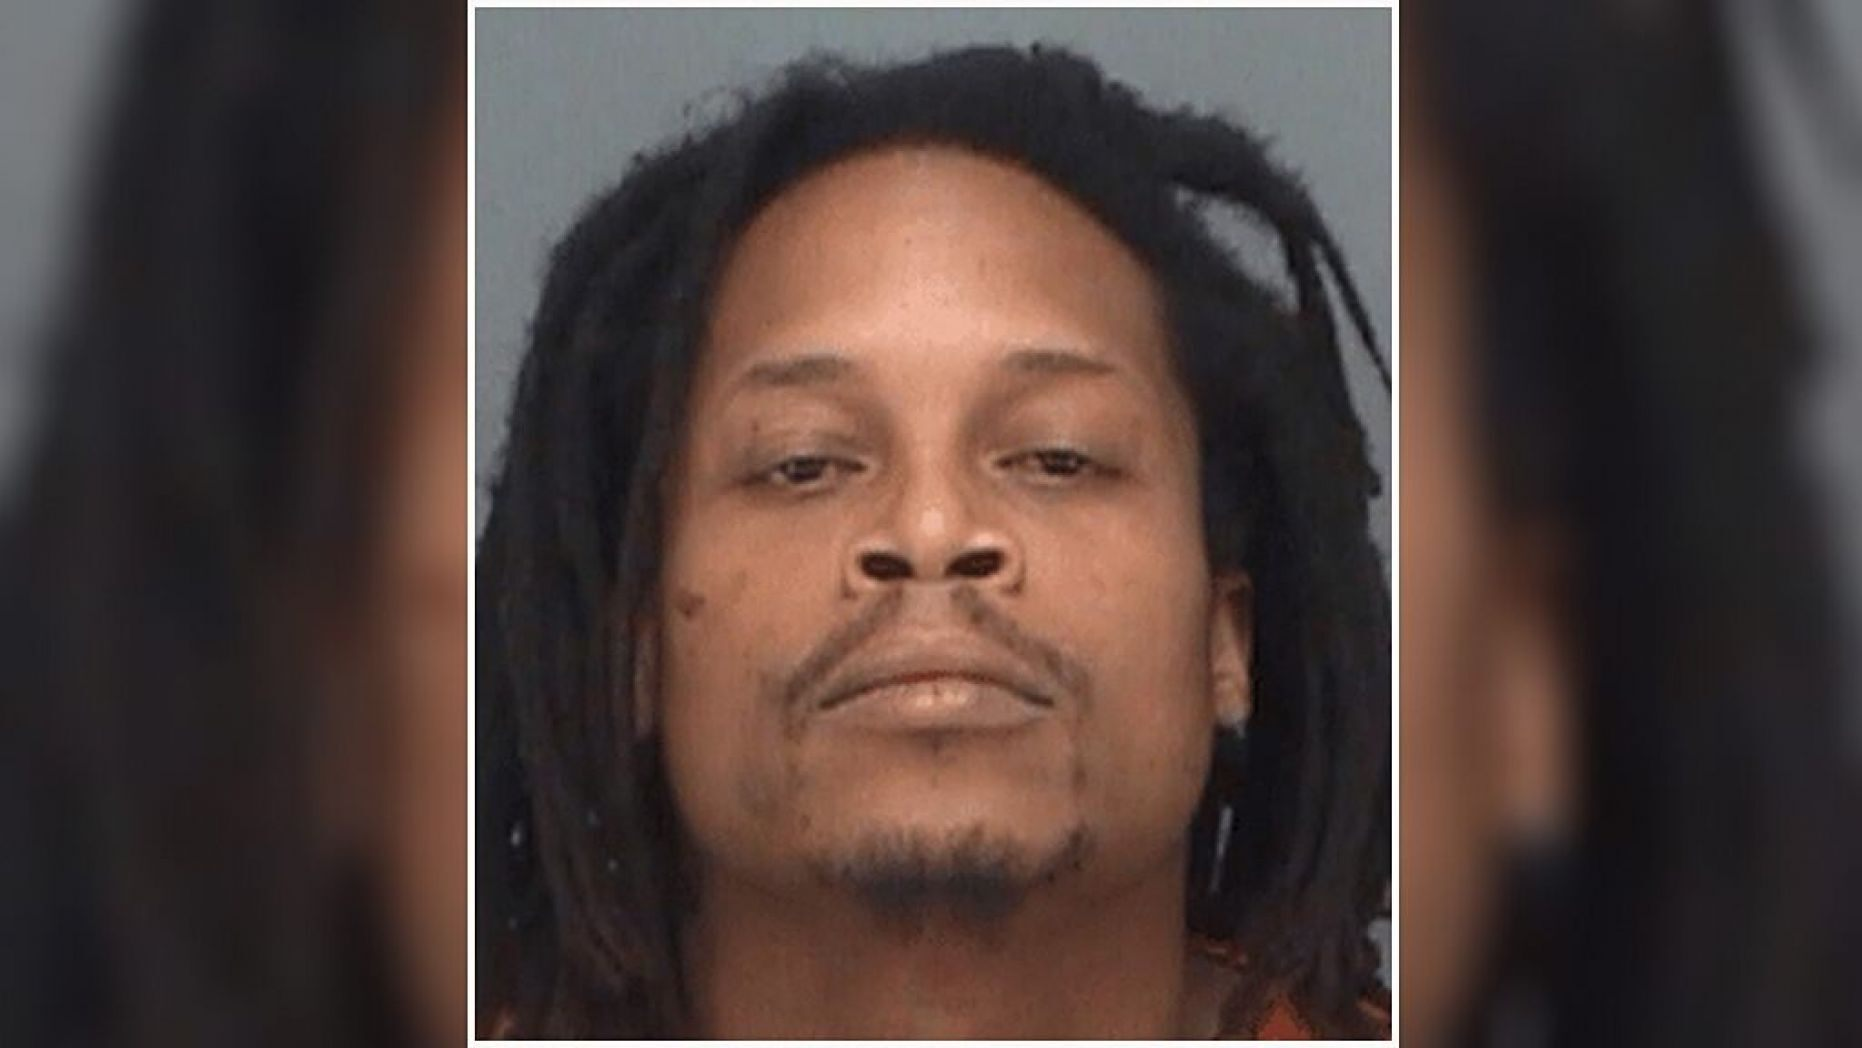 He allegedly spat inside the mouth of a policewoman. Photo - Pinellas County Sheriffs Office